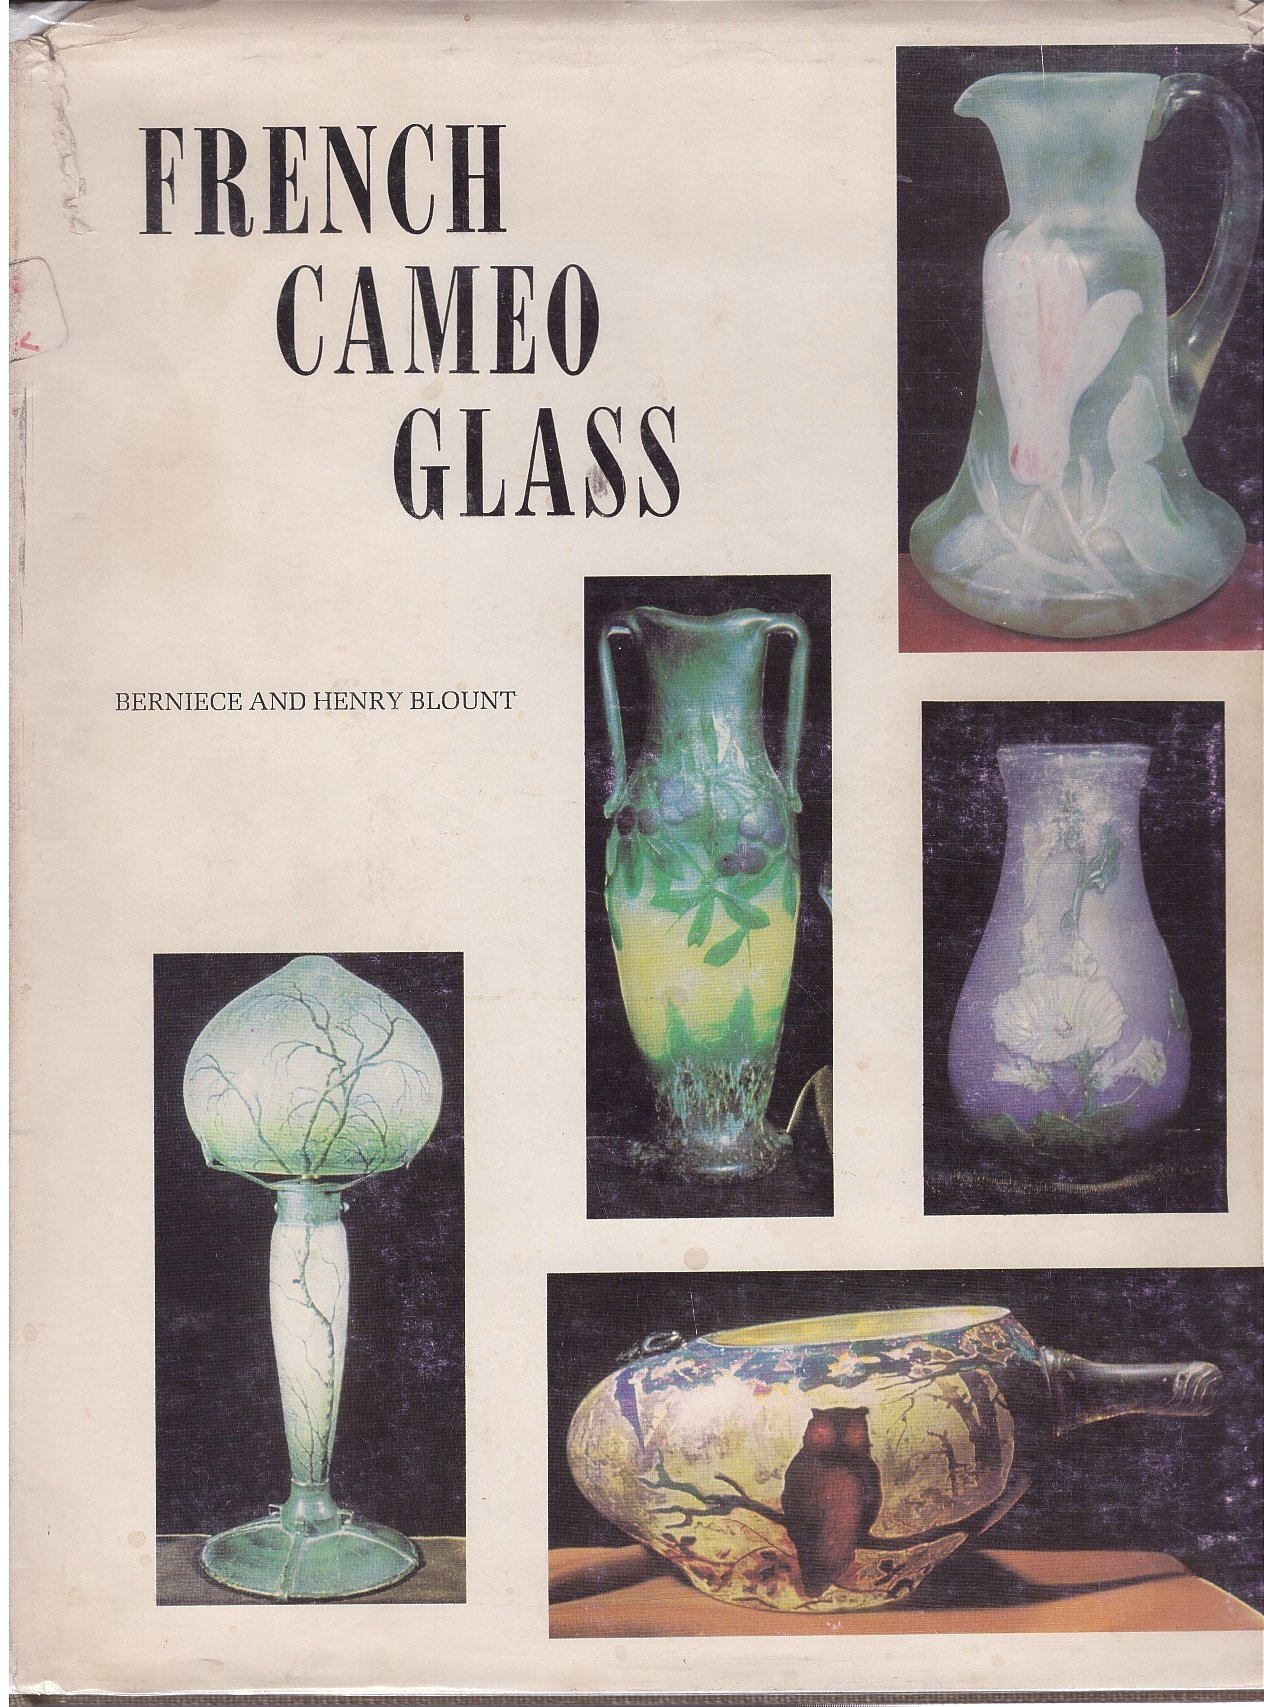 French cameo glass